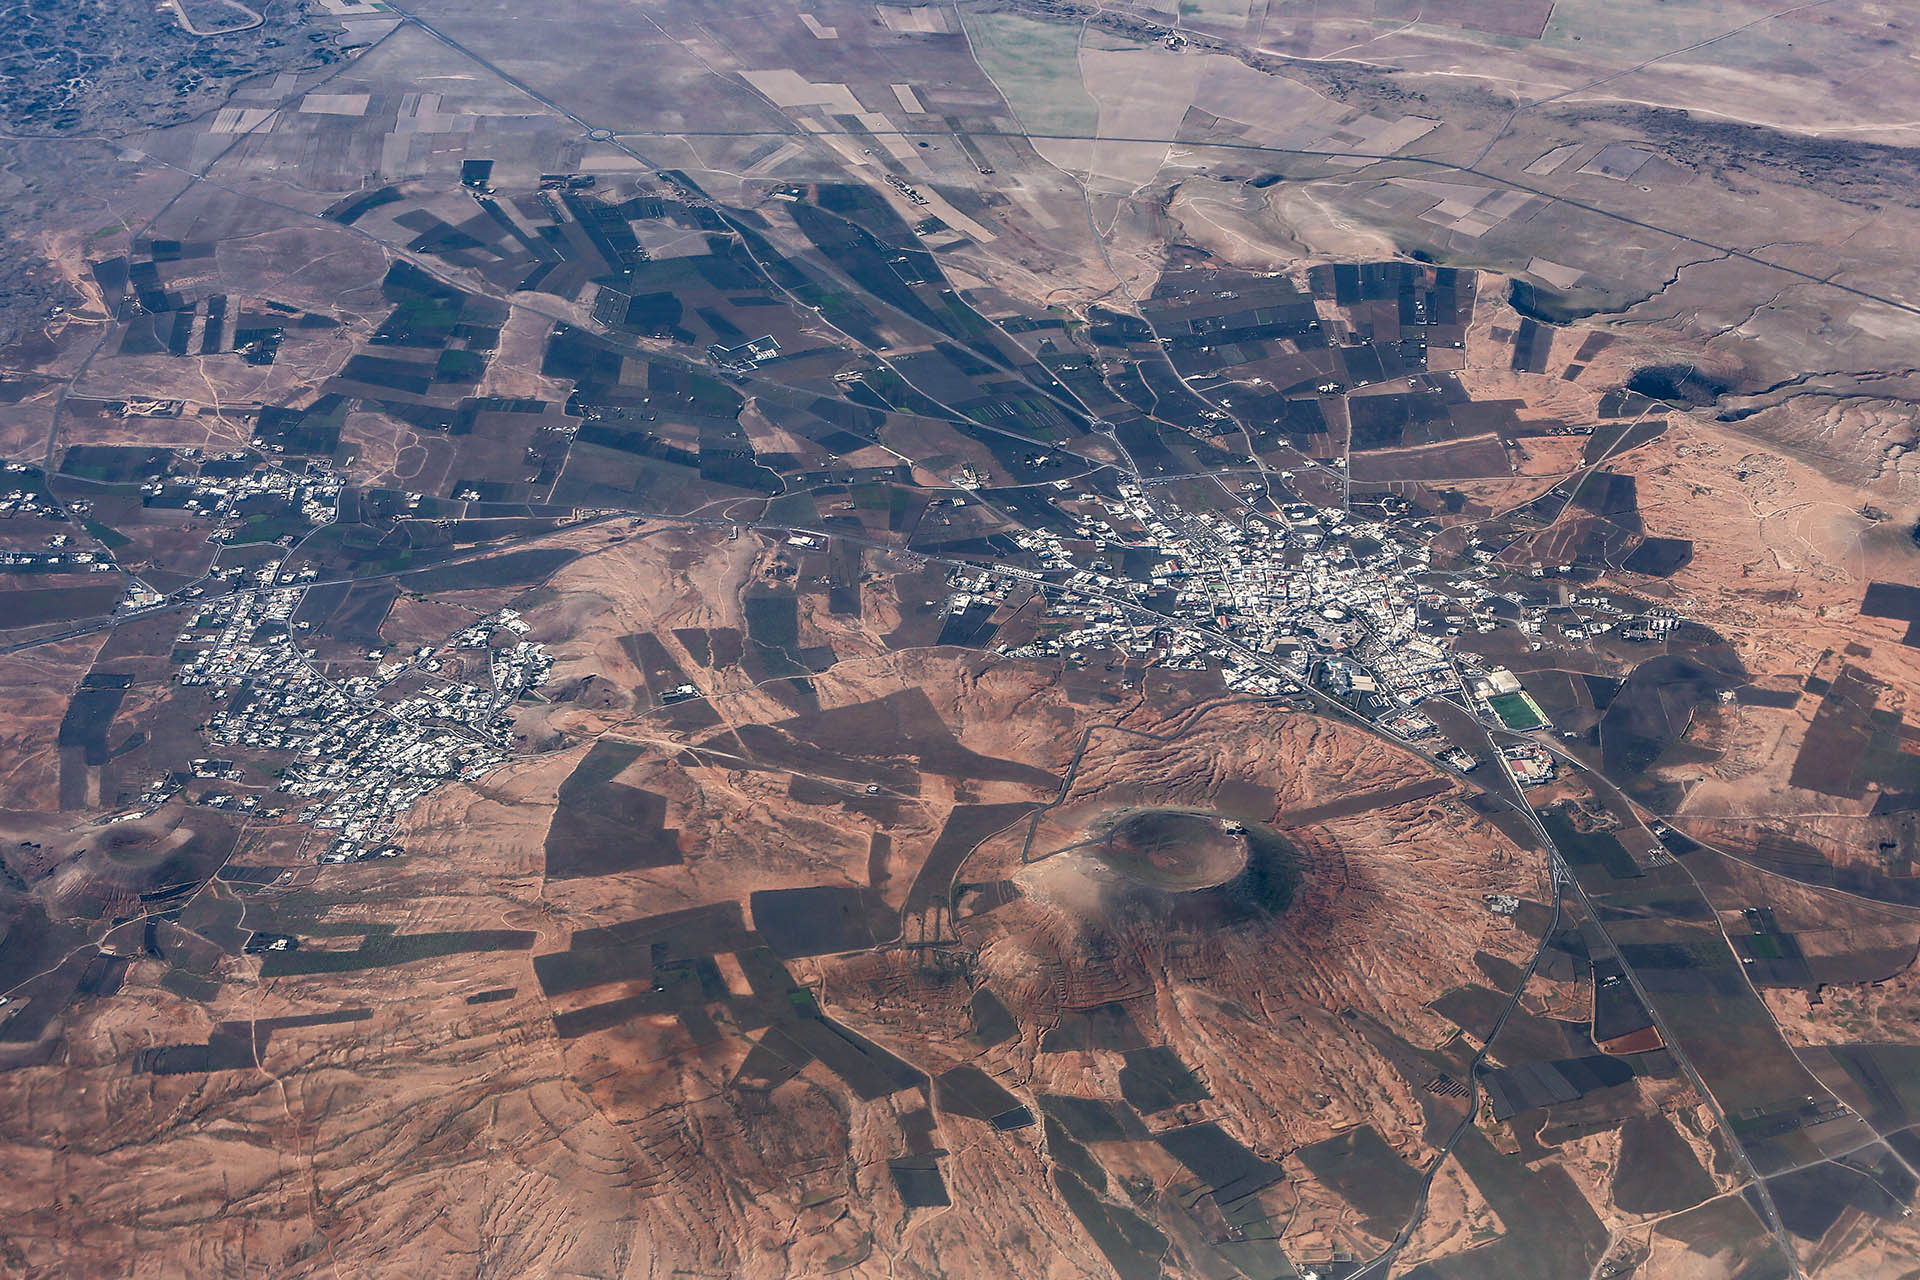 Teguise from the air